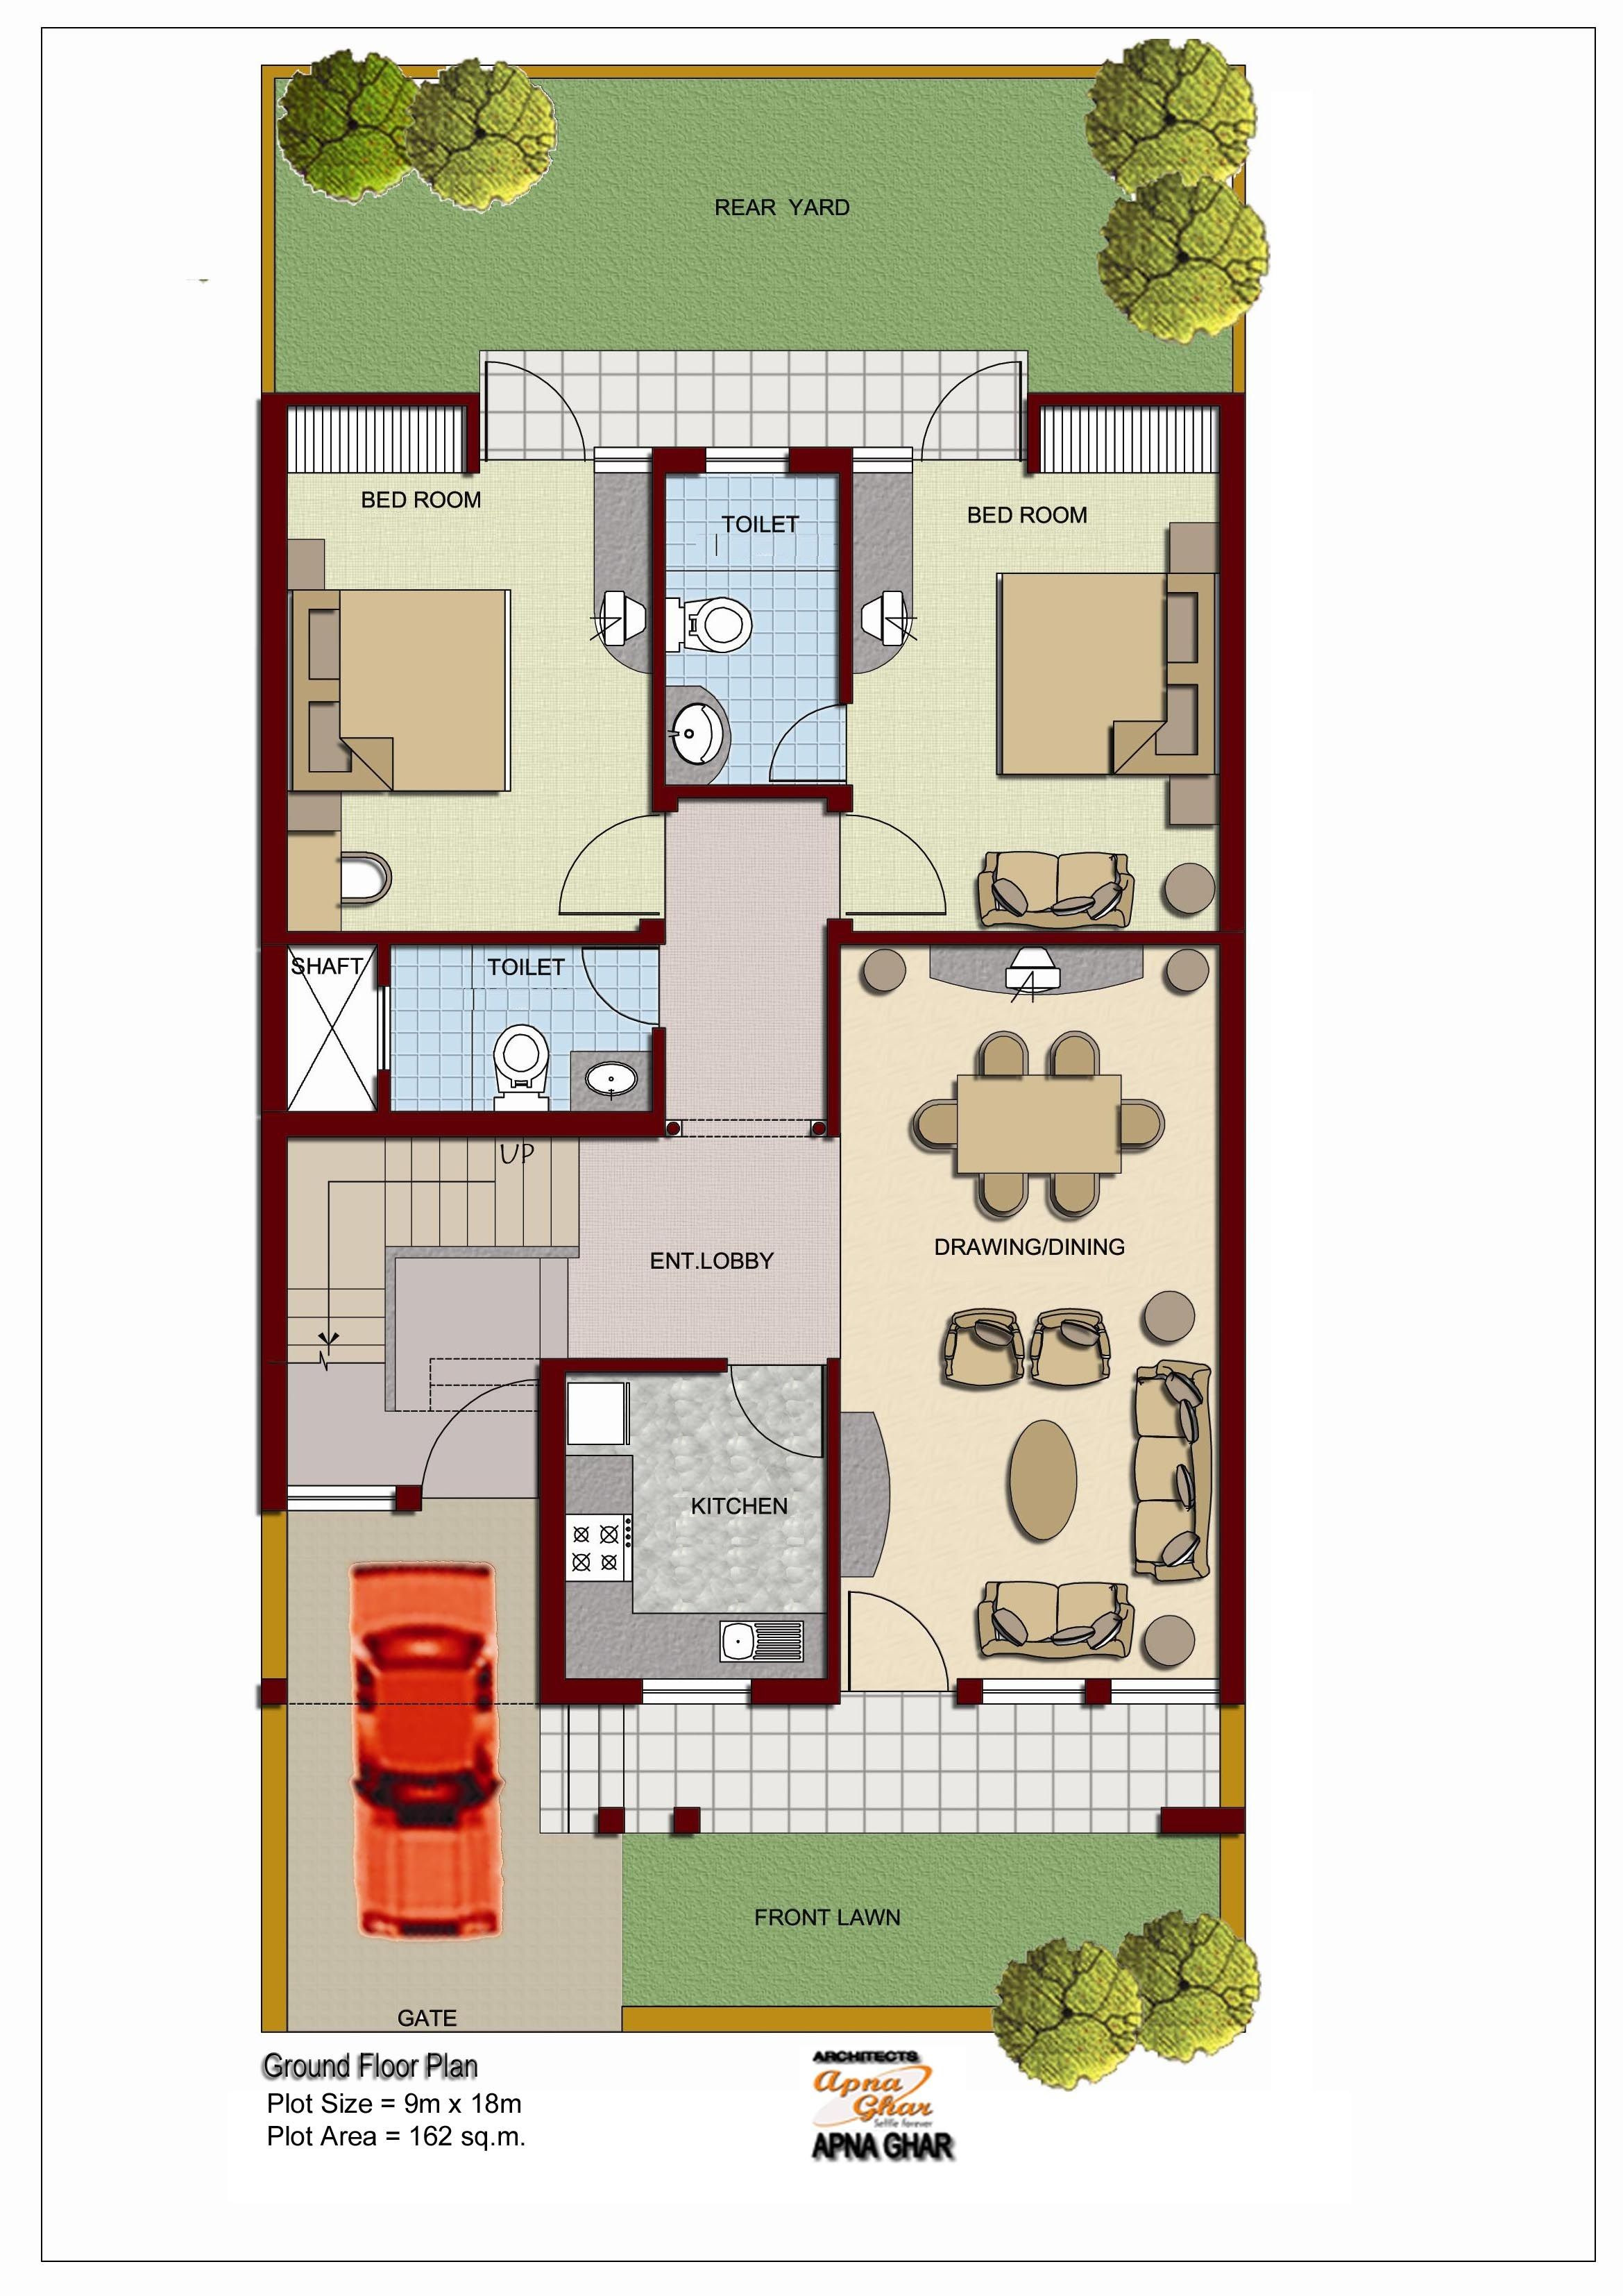 Design House Plans Online New Looking for Modern Floor Plans Checkout Our Gallery for